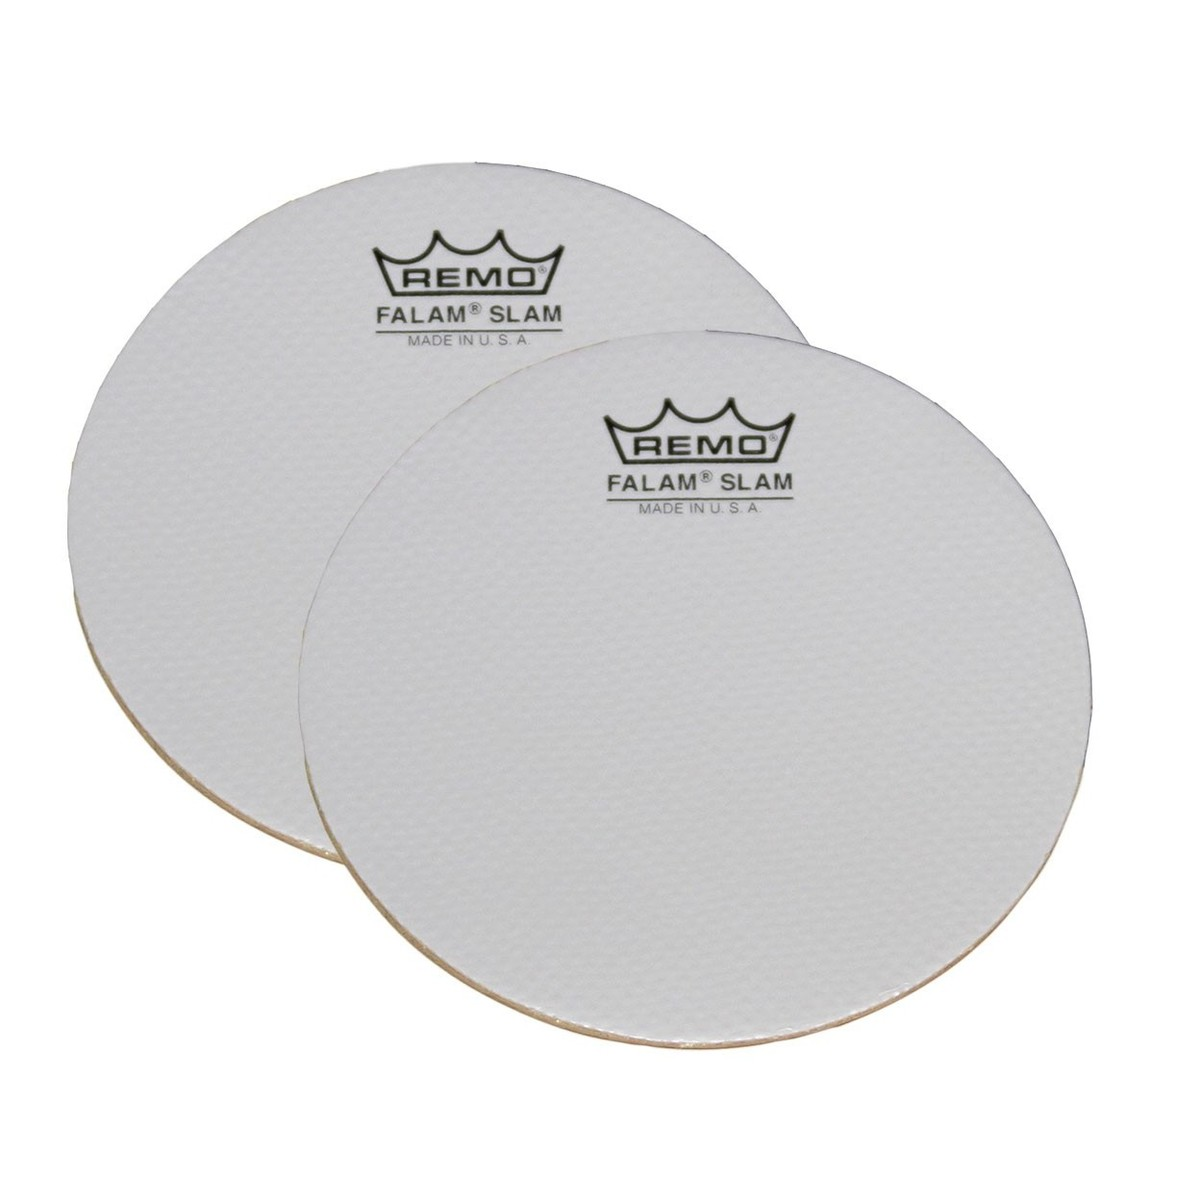 remo 2 5 39 39 falam slam pads for bass drum head at gear4music. Black Bedroom Furniture Sets. Home Design Ideas